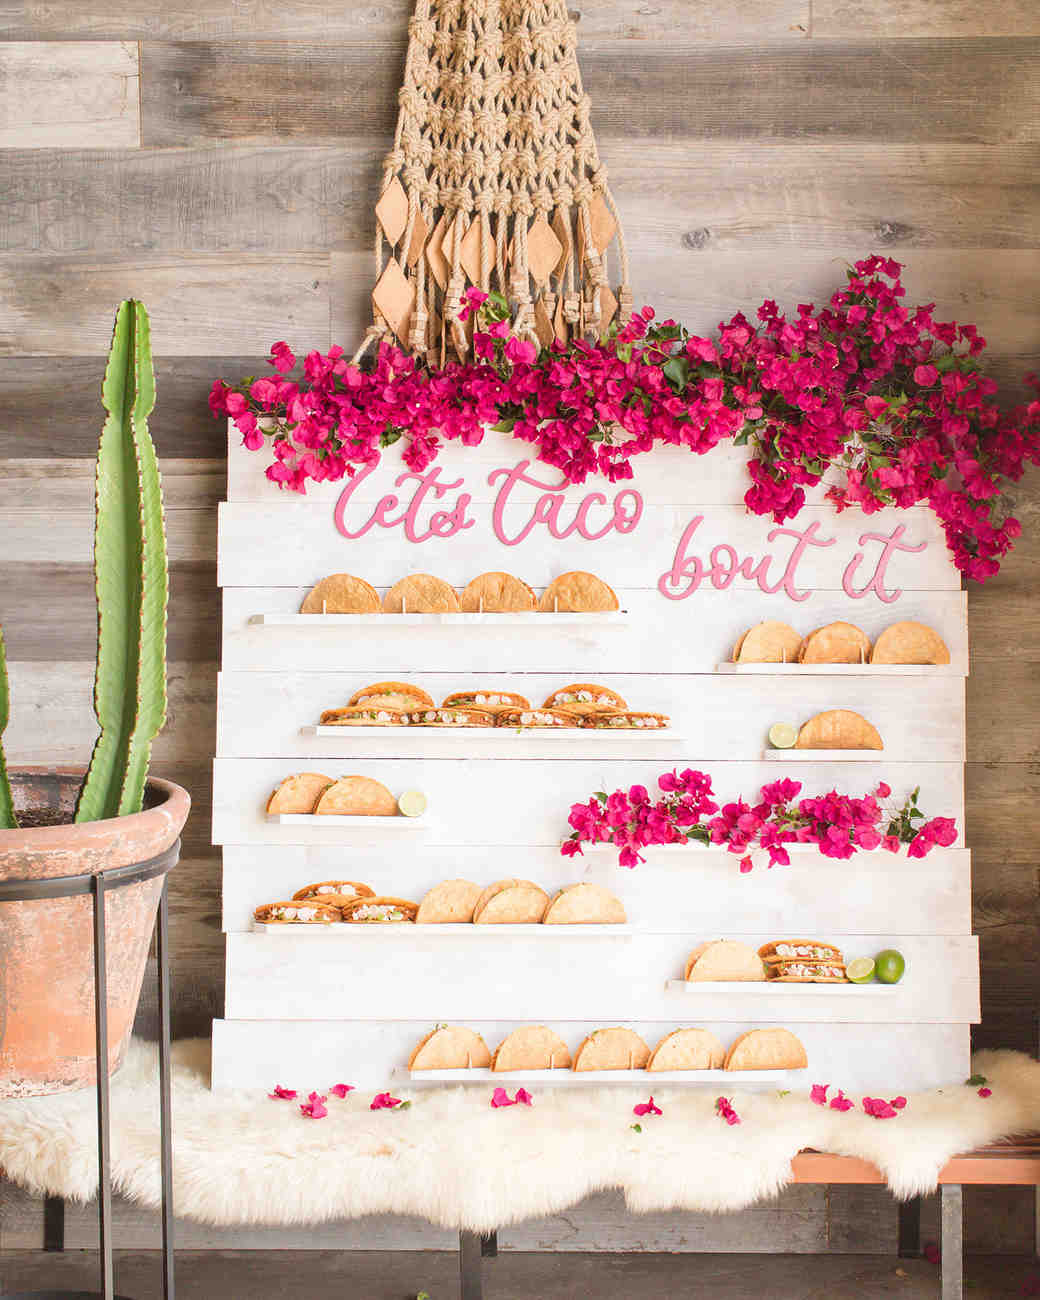 7 Trendy Wedding Appetizers My Wedding Favors